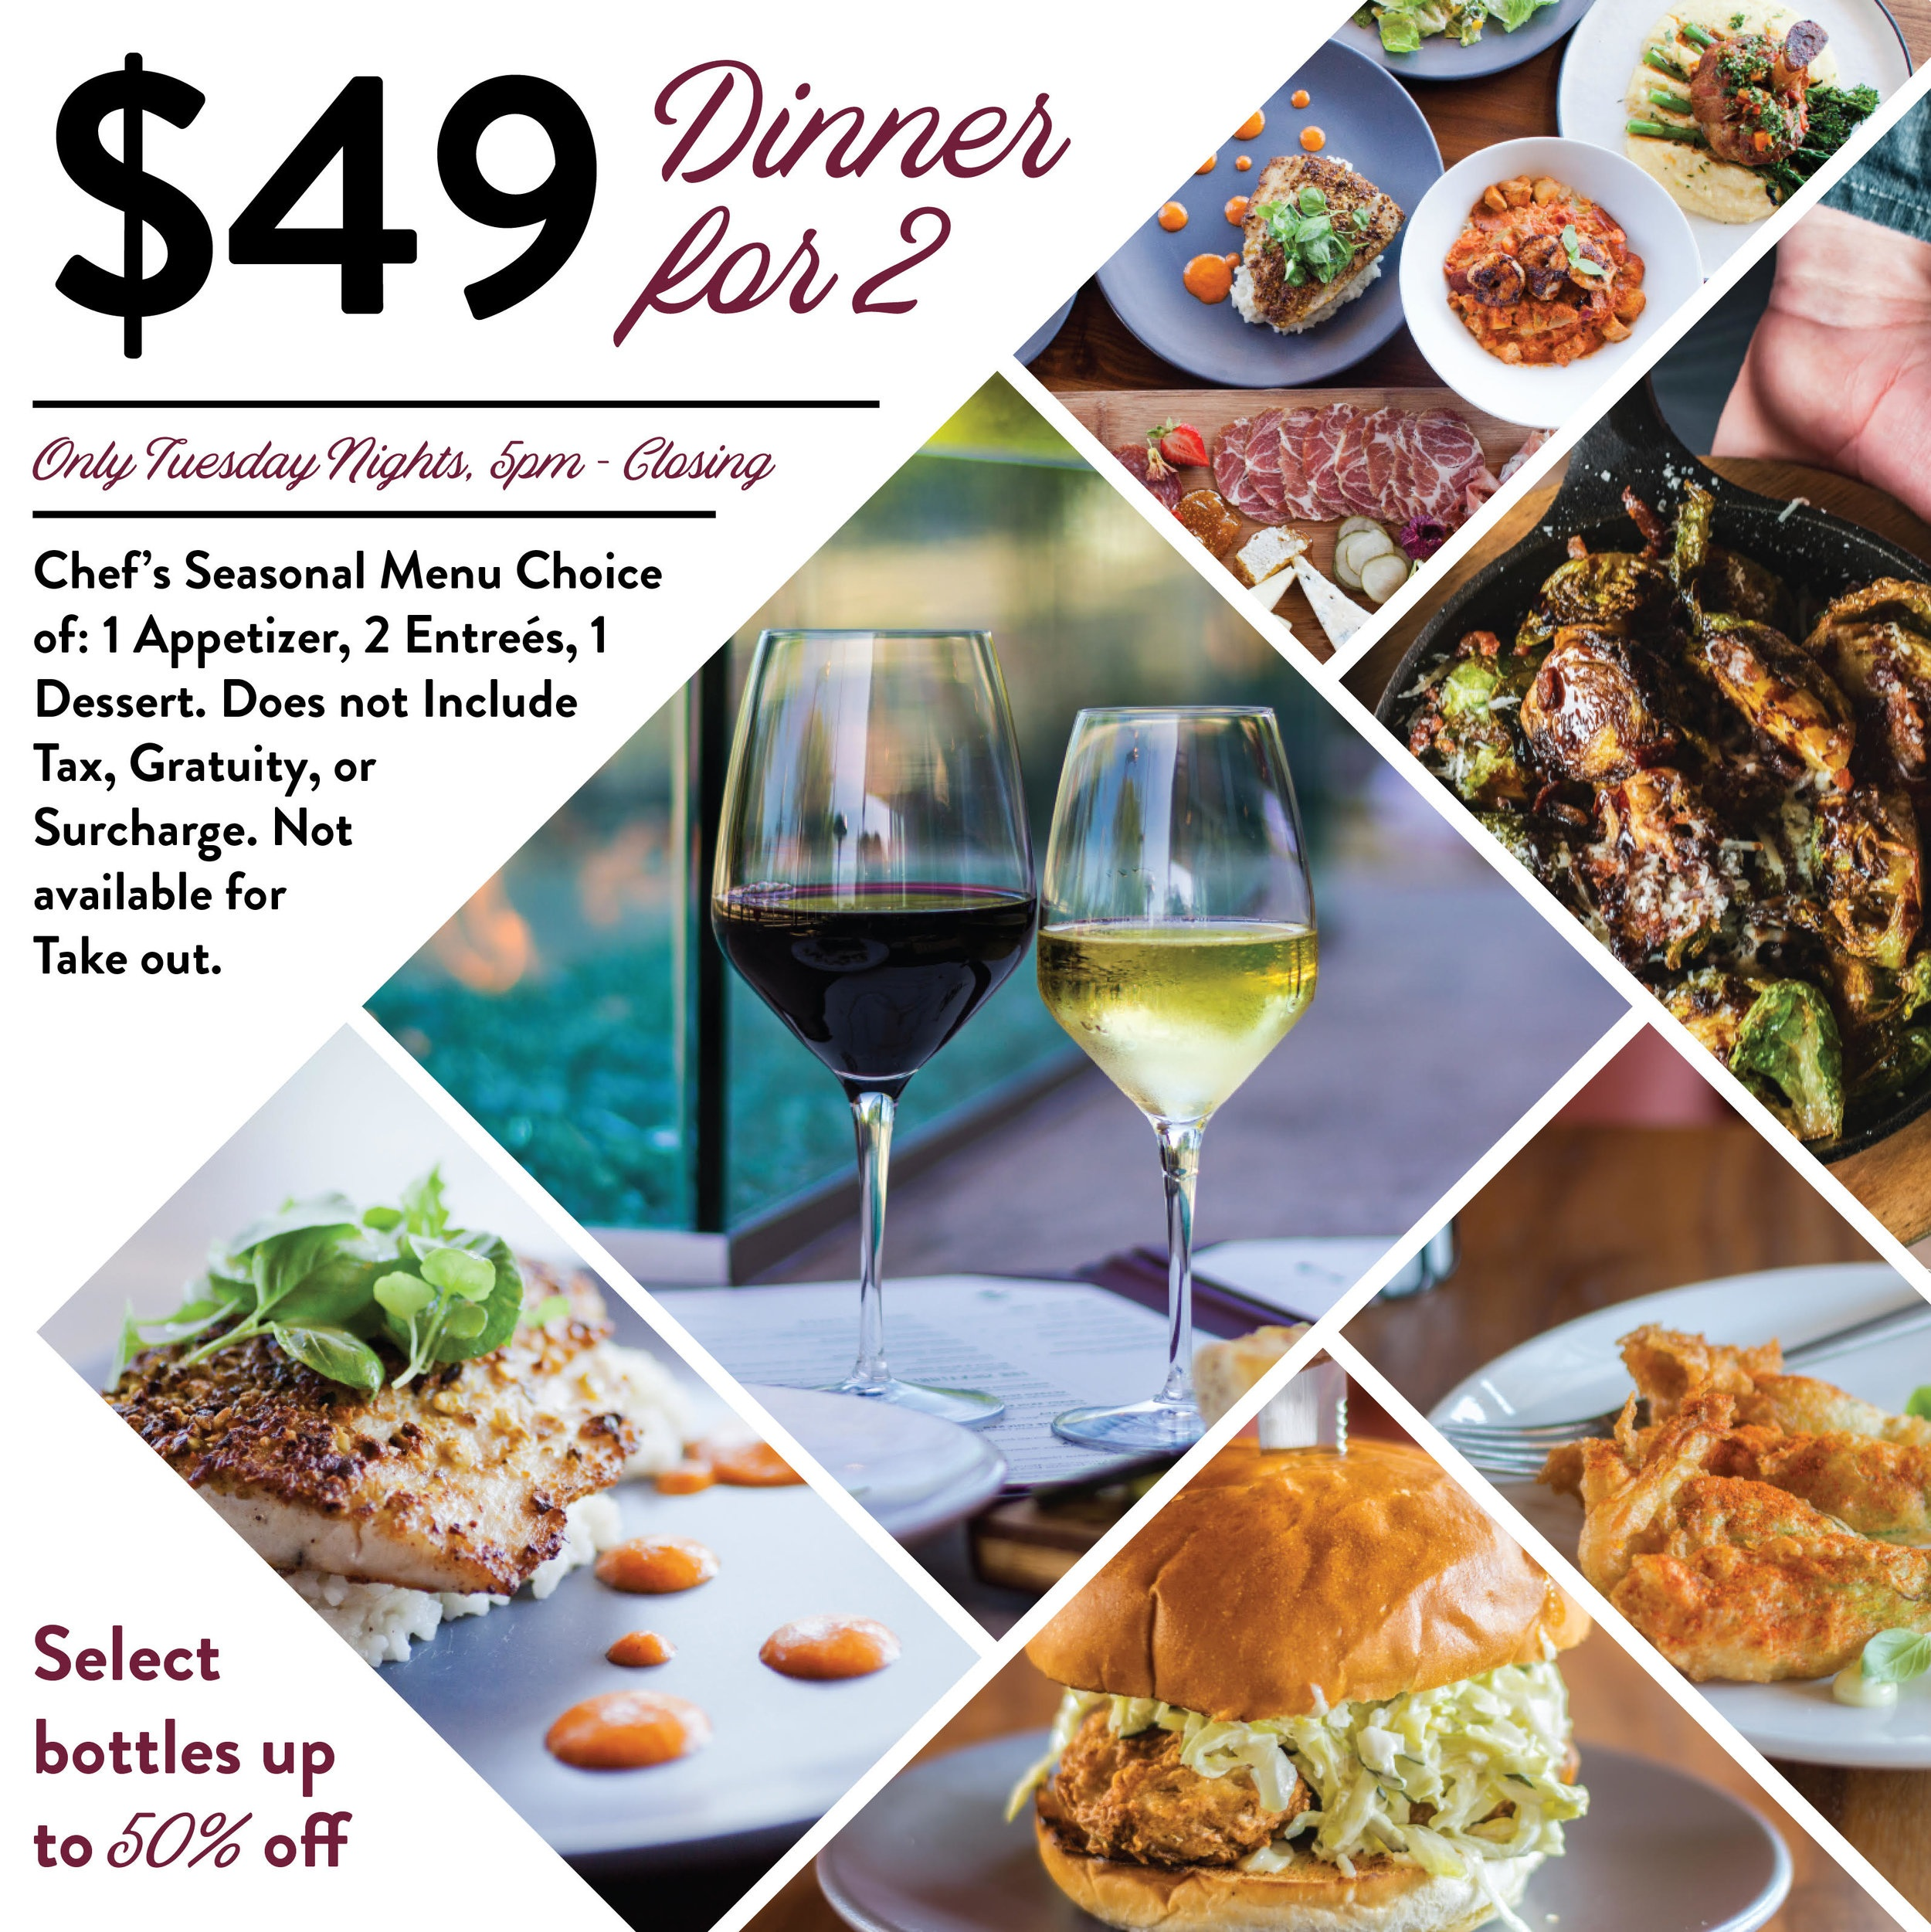 Date Night just got easier! Enjoy a limited three course seasonal menu from Chef Justin Braly for two people for only $49! Enjoy a selection of fine wines up to 50% off. Only available Tuesday Night.